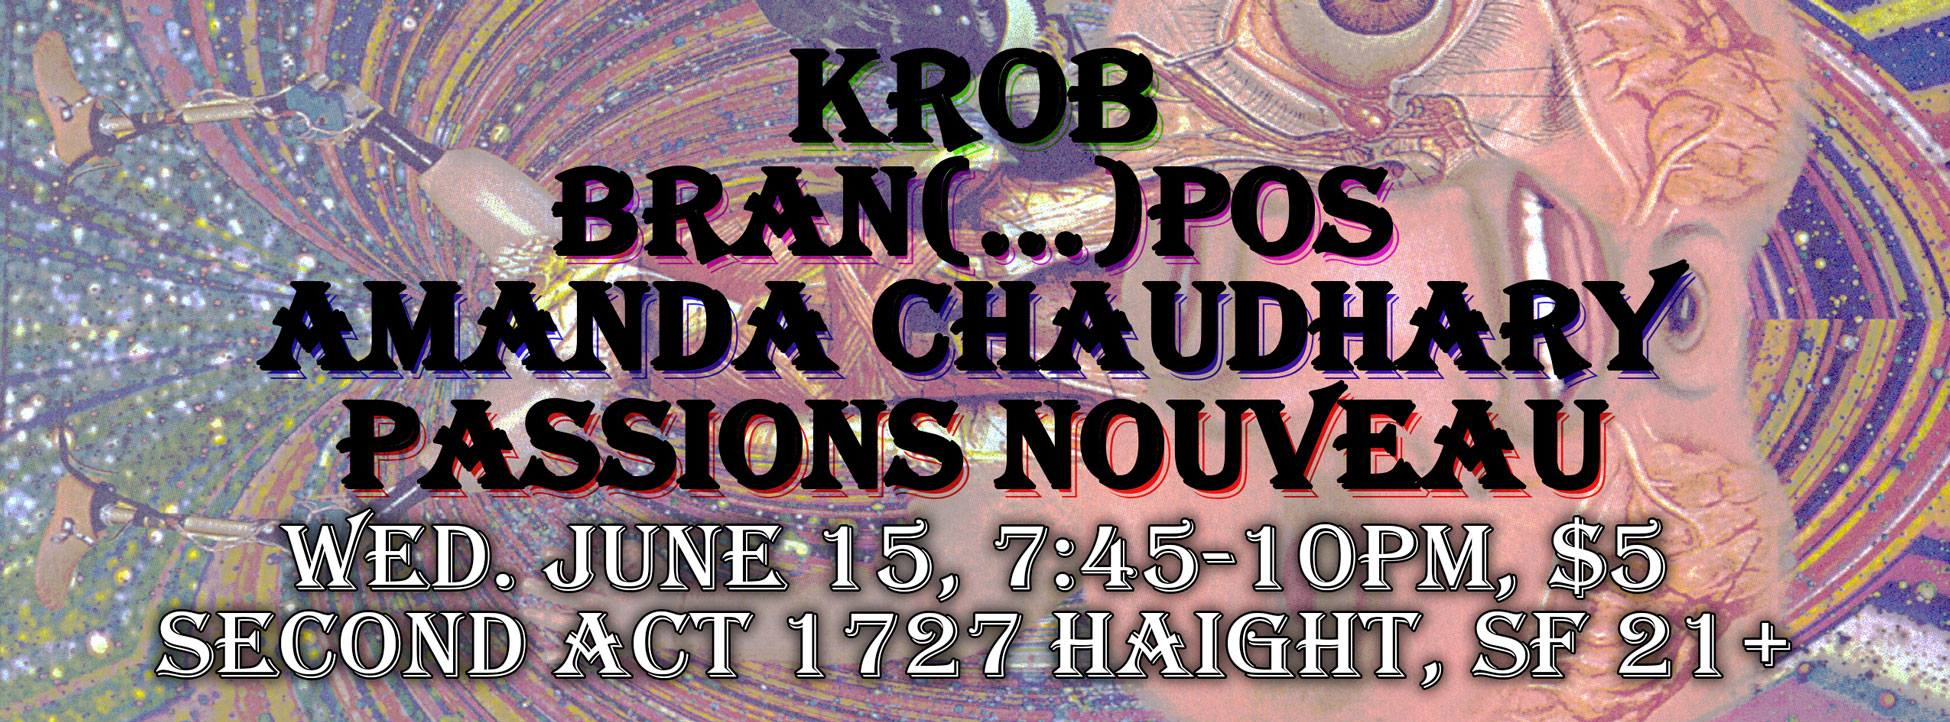 KrOB, bran(pos), Amanda Chaudhary, Passions Nouveau at Second Act (SF)